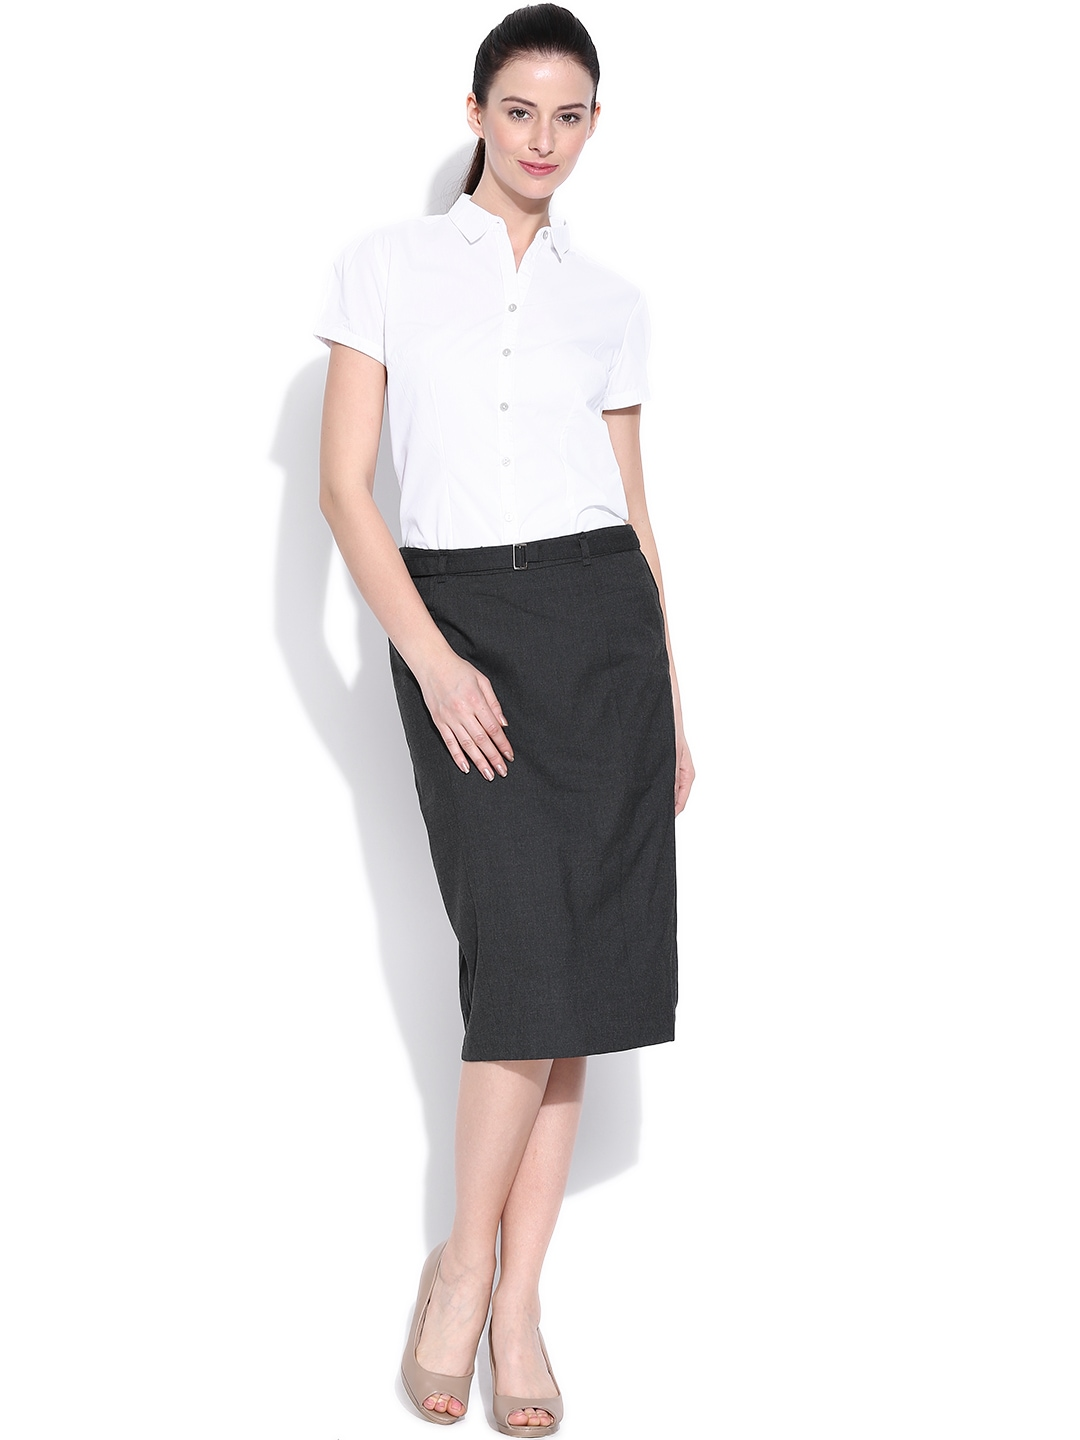 myntra annabelle by pantaloons charcoal grey pencil skirt